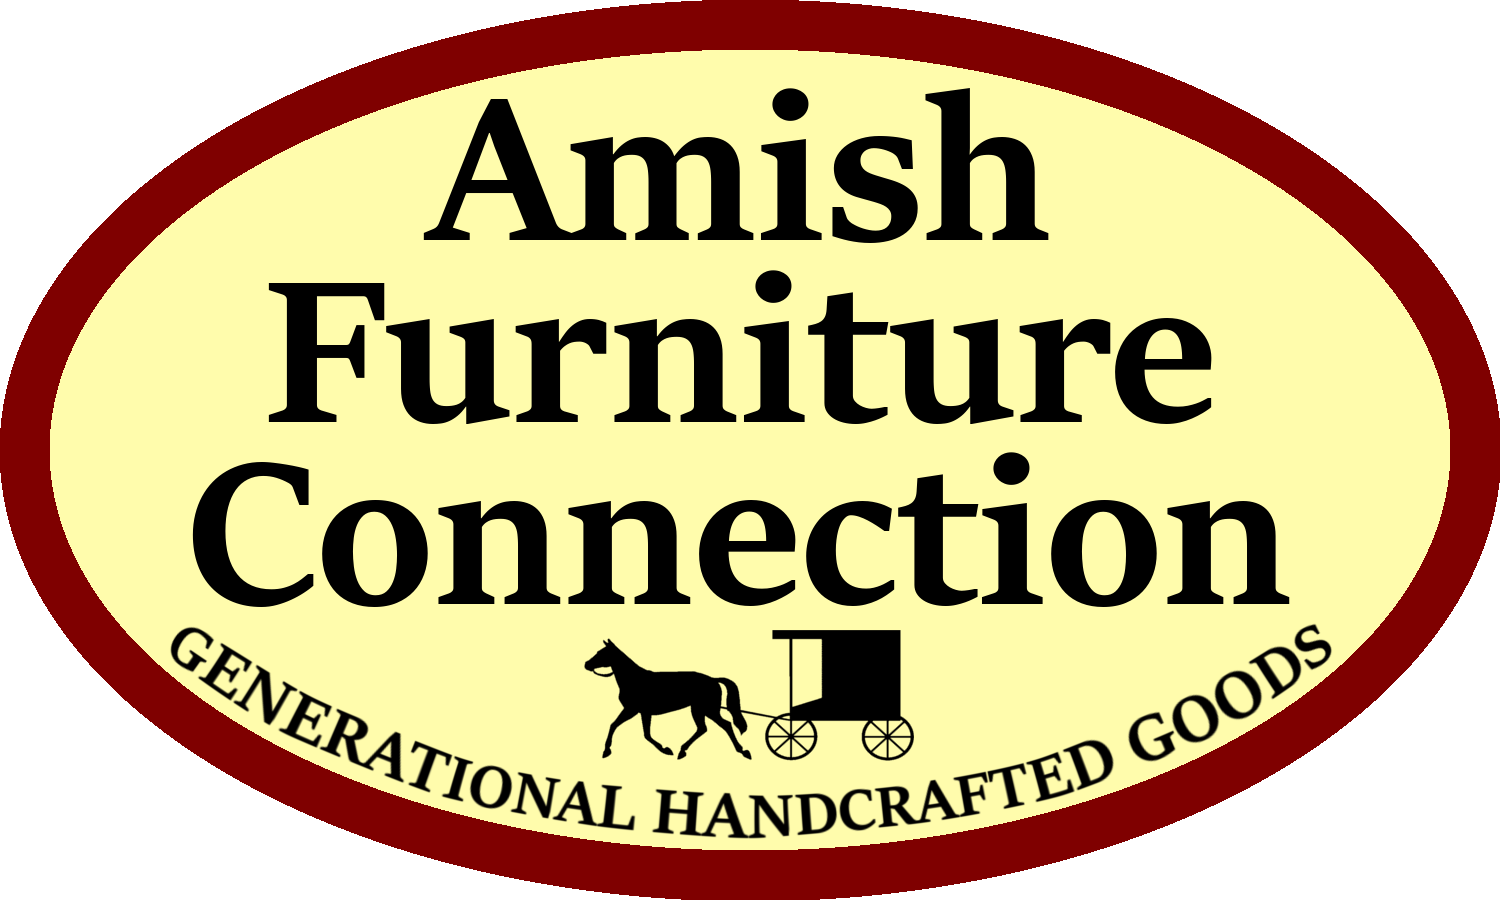 Amish Furniture Connection